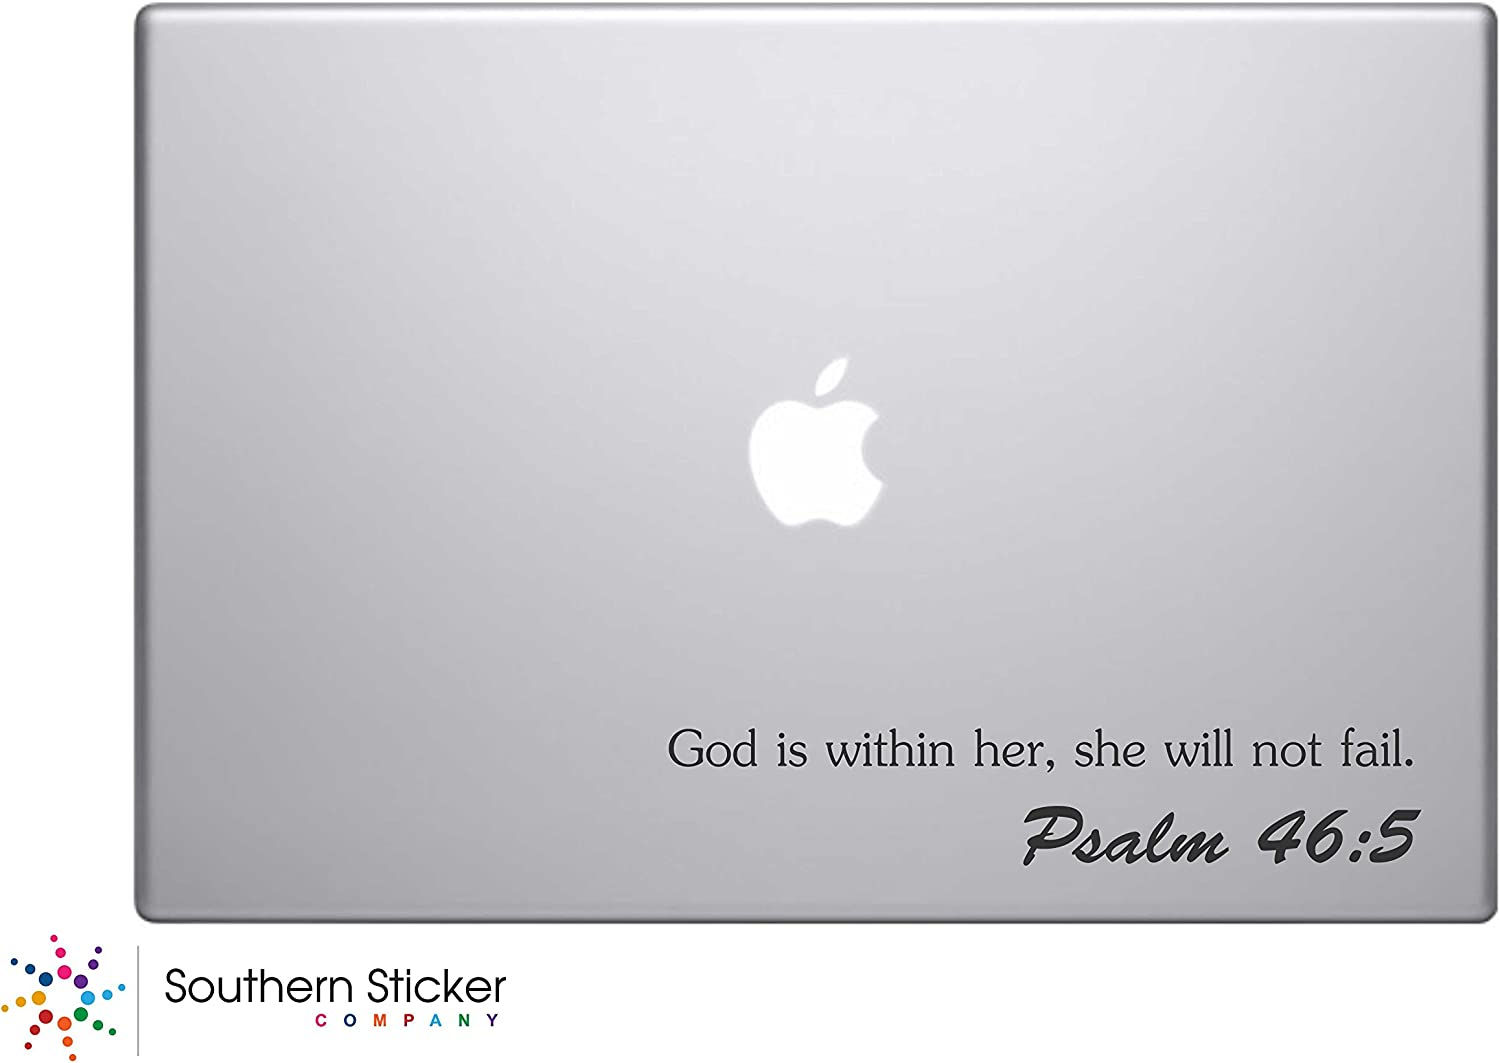 God Is Within Her, She Will Not Fail. Psalm 45:5 Bible Verse Laptop Inspirational Quotes Decal Sticker Silhouette Doctor computer Symbol Keypad Decal Skin Sticker